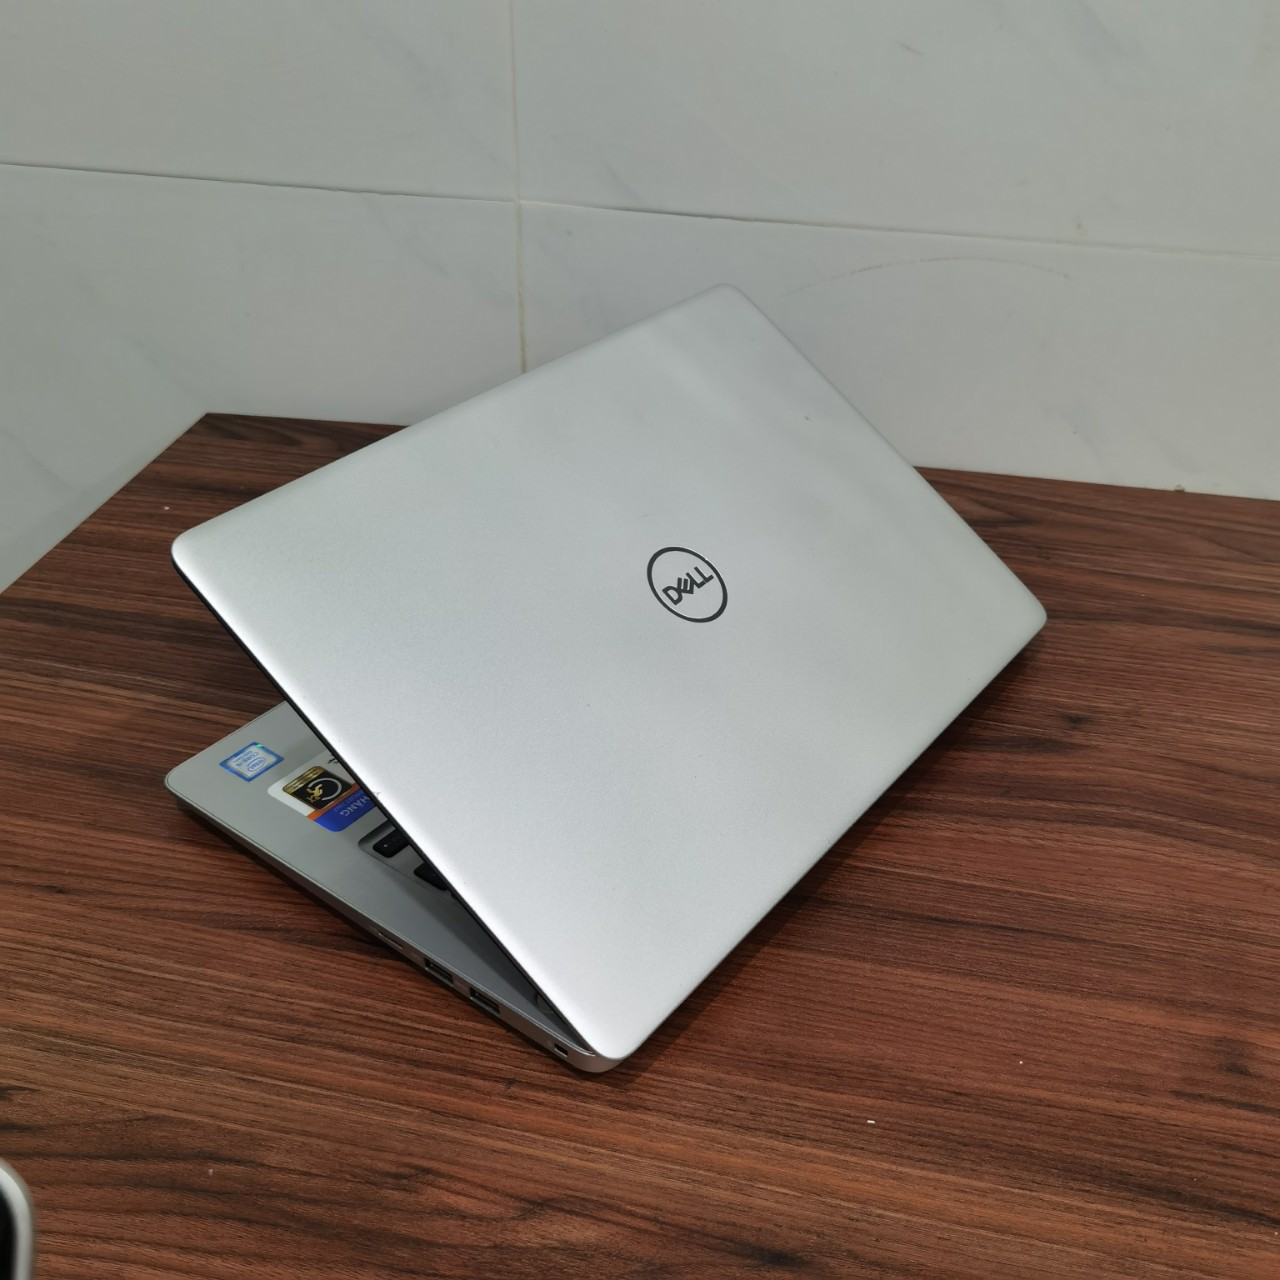 Dell Inspiron N5370